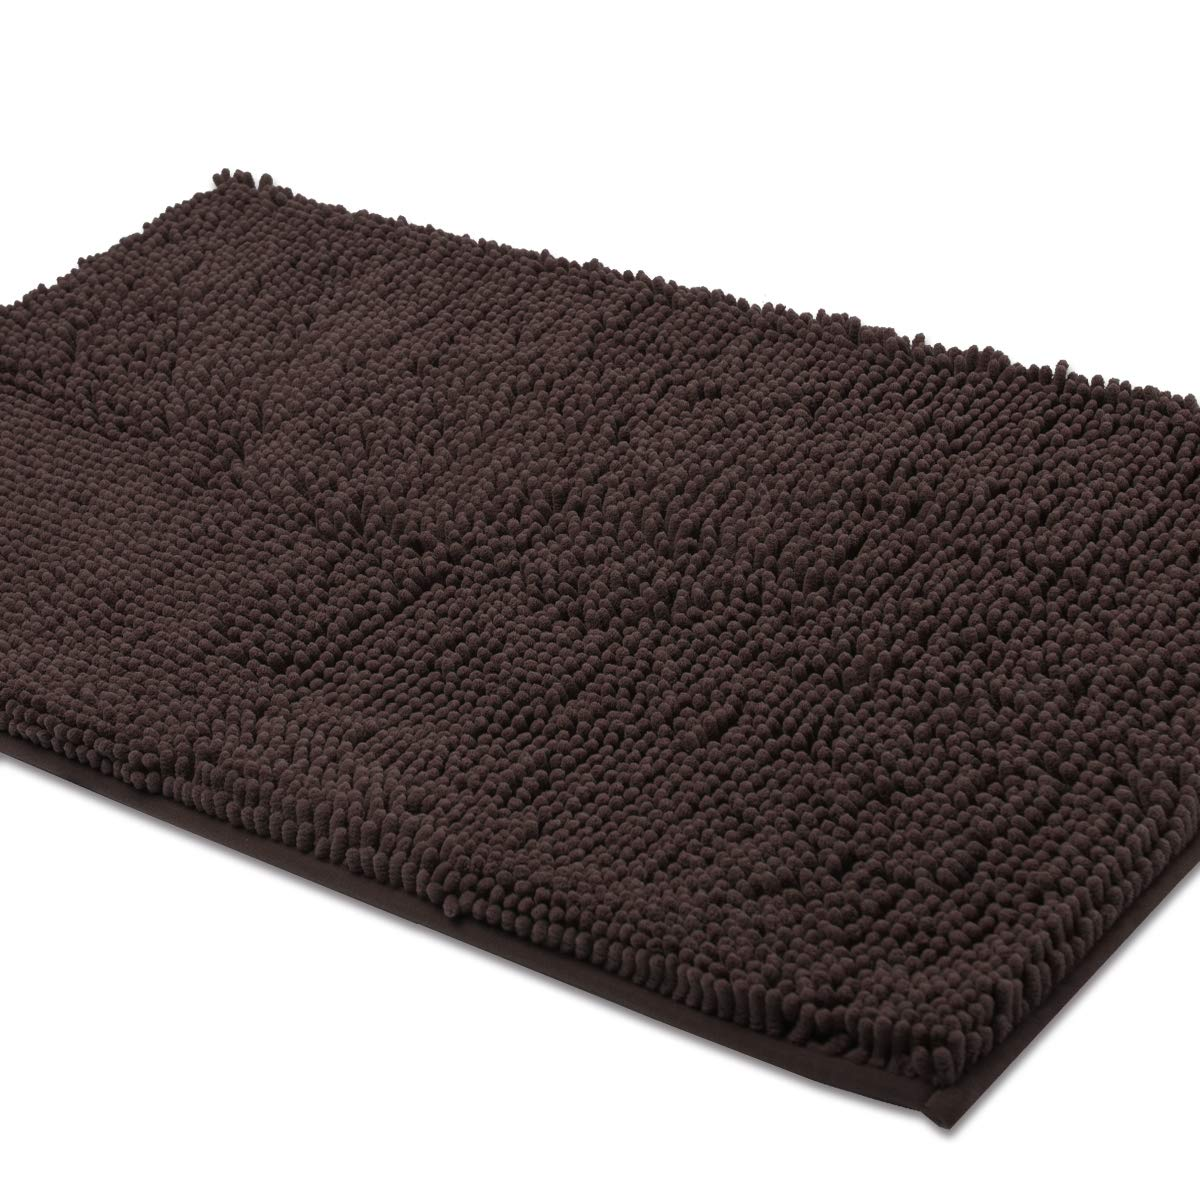 ITSOFT Non-Slip Shaggy Chenille Soft Microfibers Toilet Contour Bathroom Rug with Water Absorbent, Machine Washable, 21 x 24 Inch U-Shaped Chocolate Brown